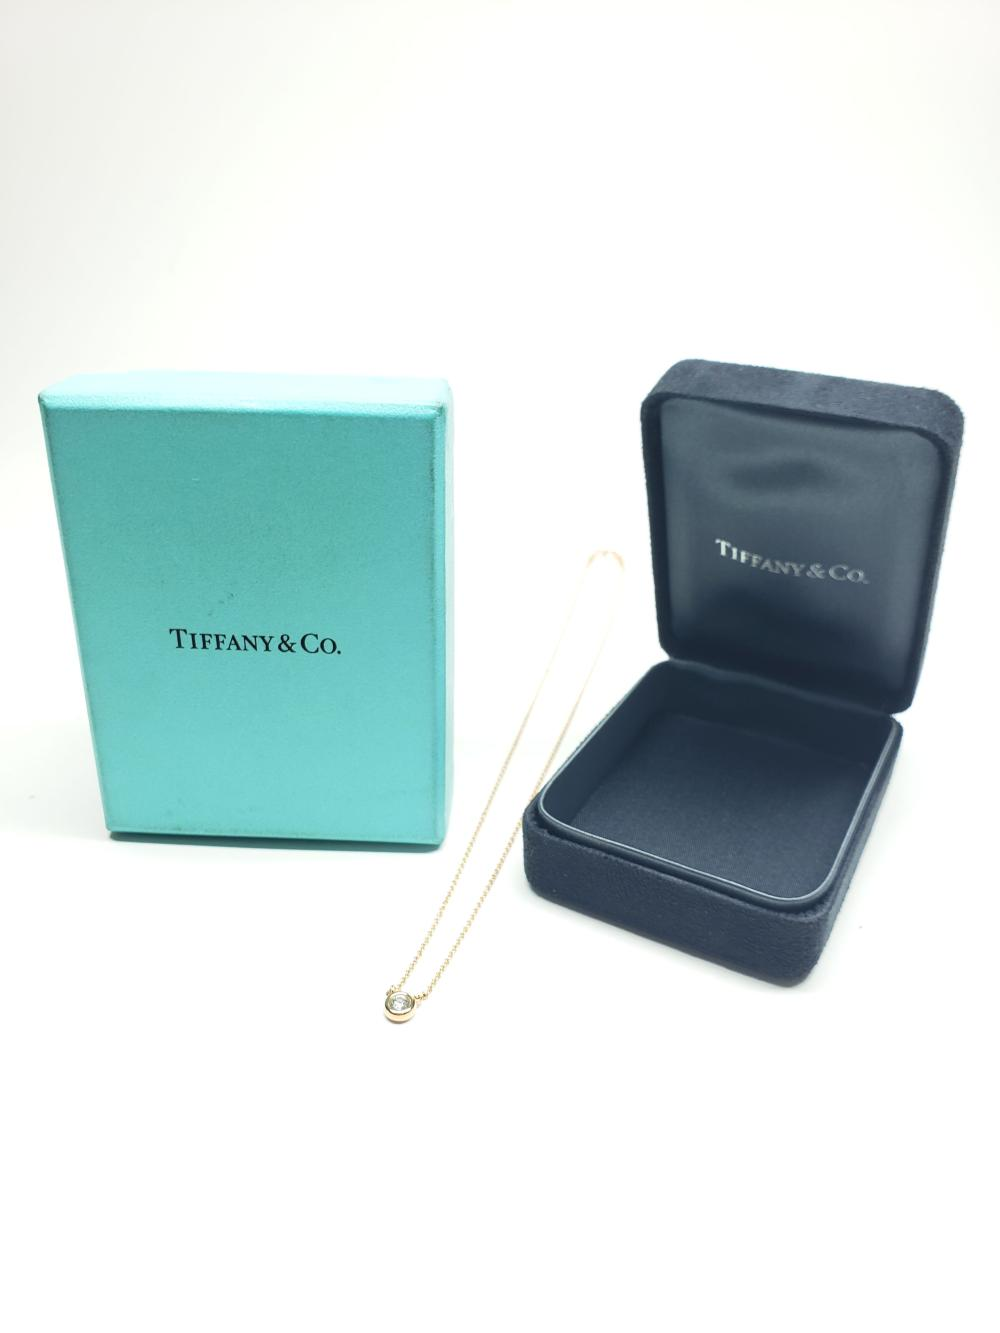 Lot 85: Tiffany & Co. Elsa Perreti .20 Diamond Solitaire Necklace 18k Rose Gold Chain with Pendant